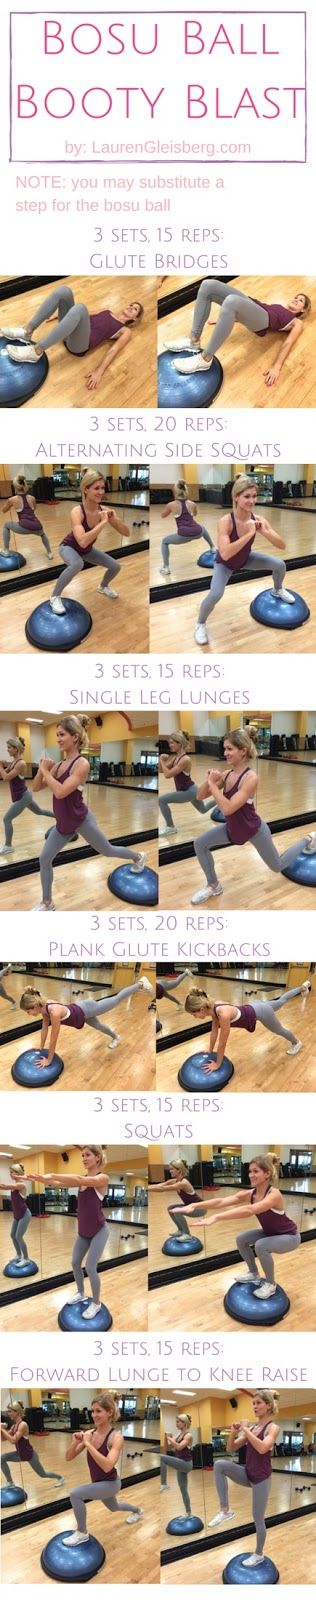 Bosu Ball Booty Workout | click for the full workout plan by LaurenGleisberg.com